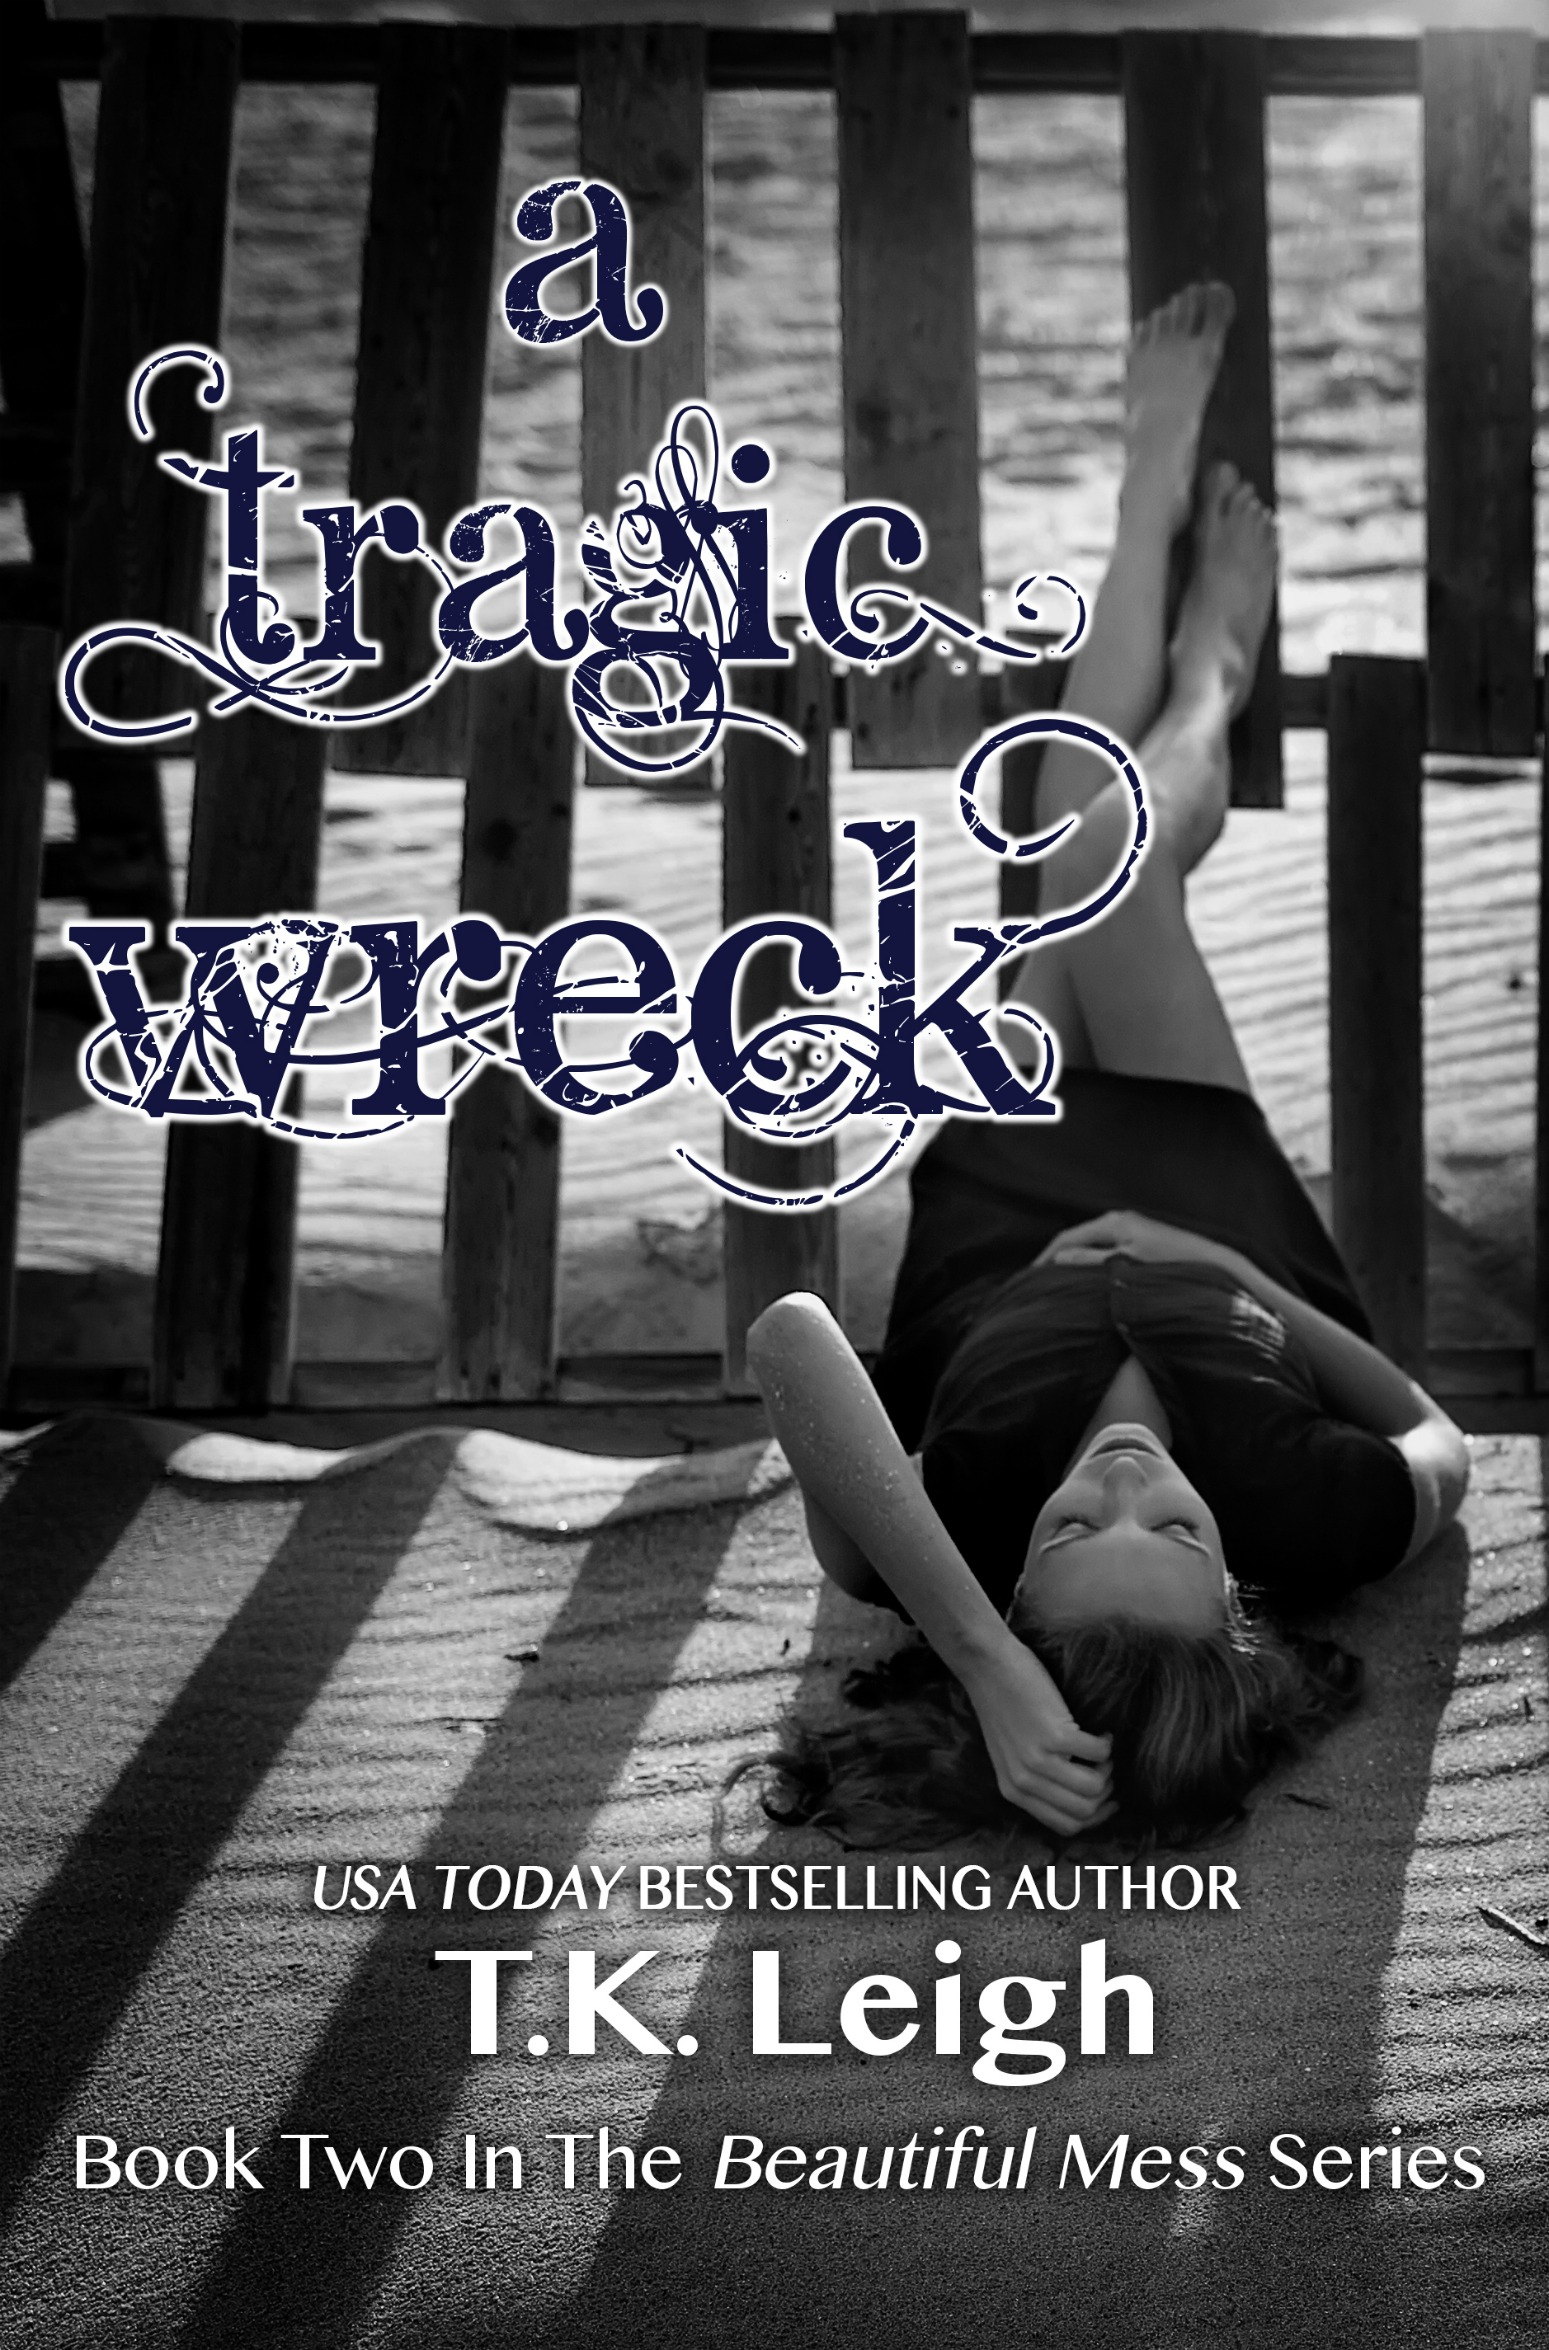 A Tragic Wreck Ebook Cover.jpg